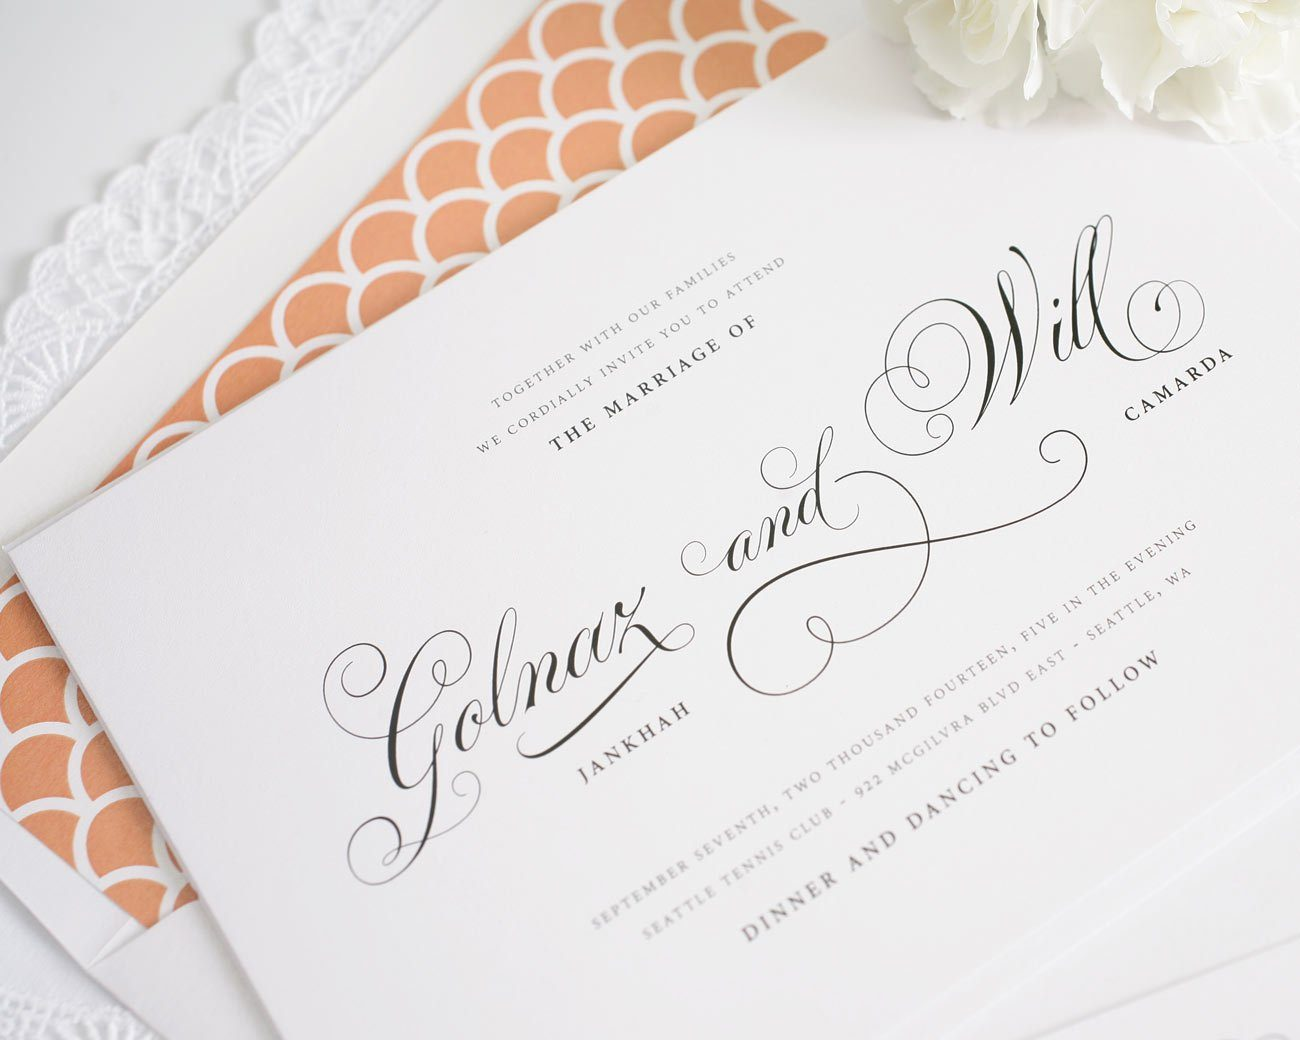 Peach script wedding invitations